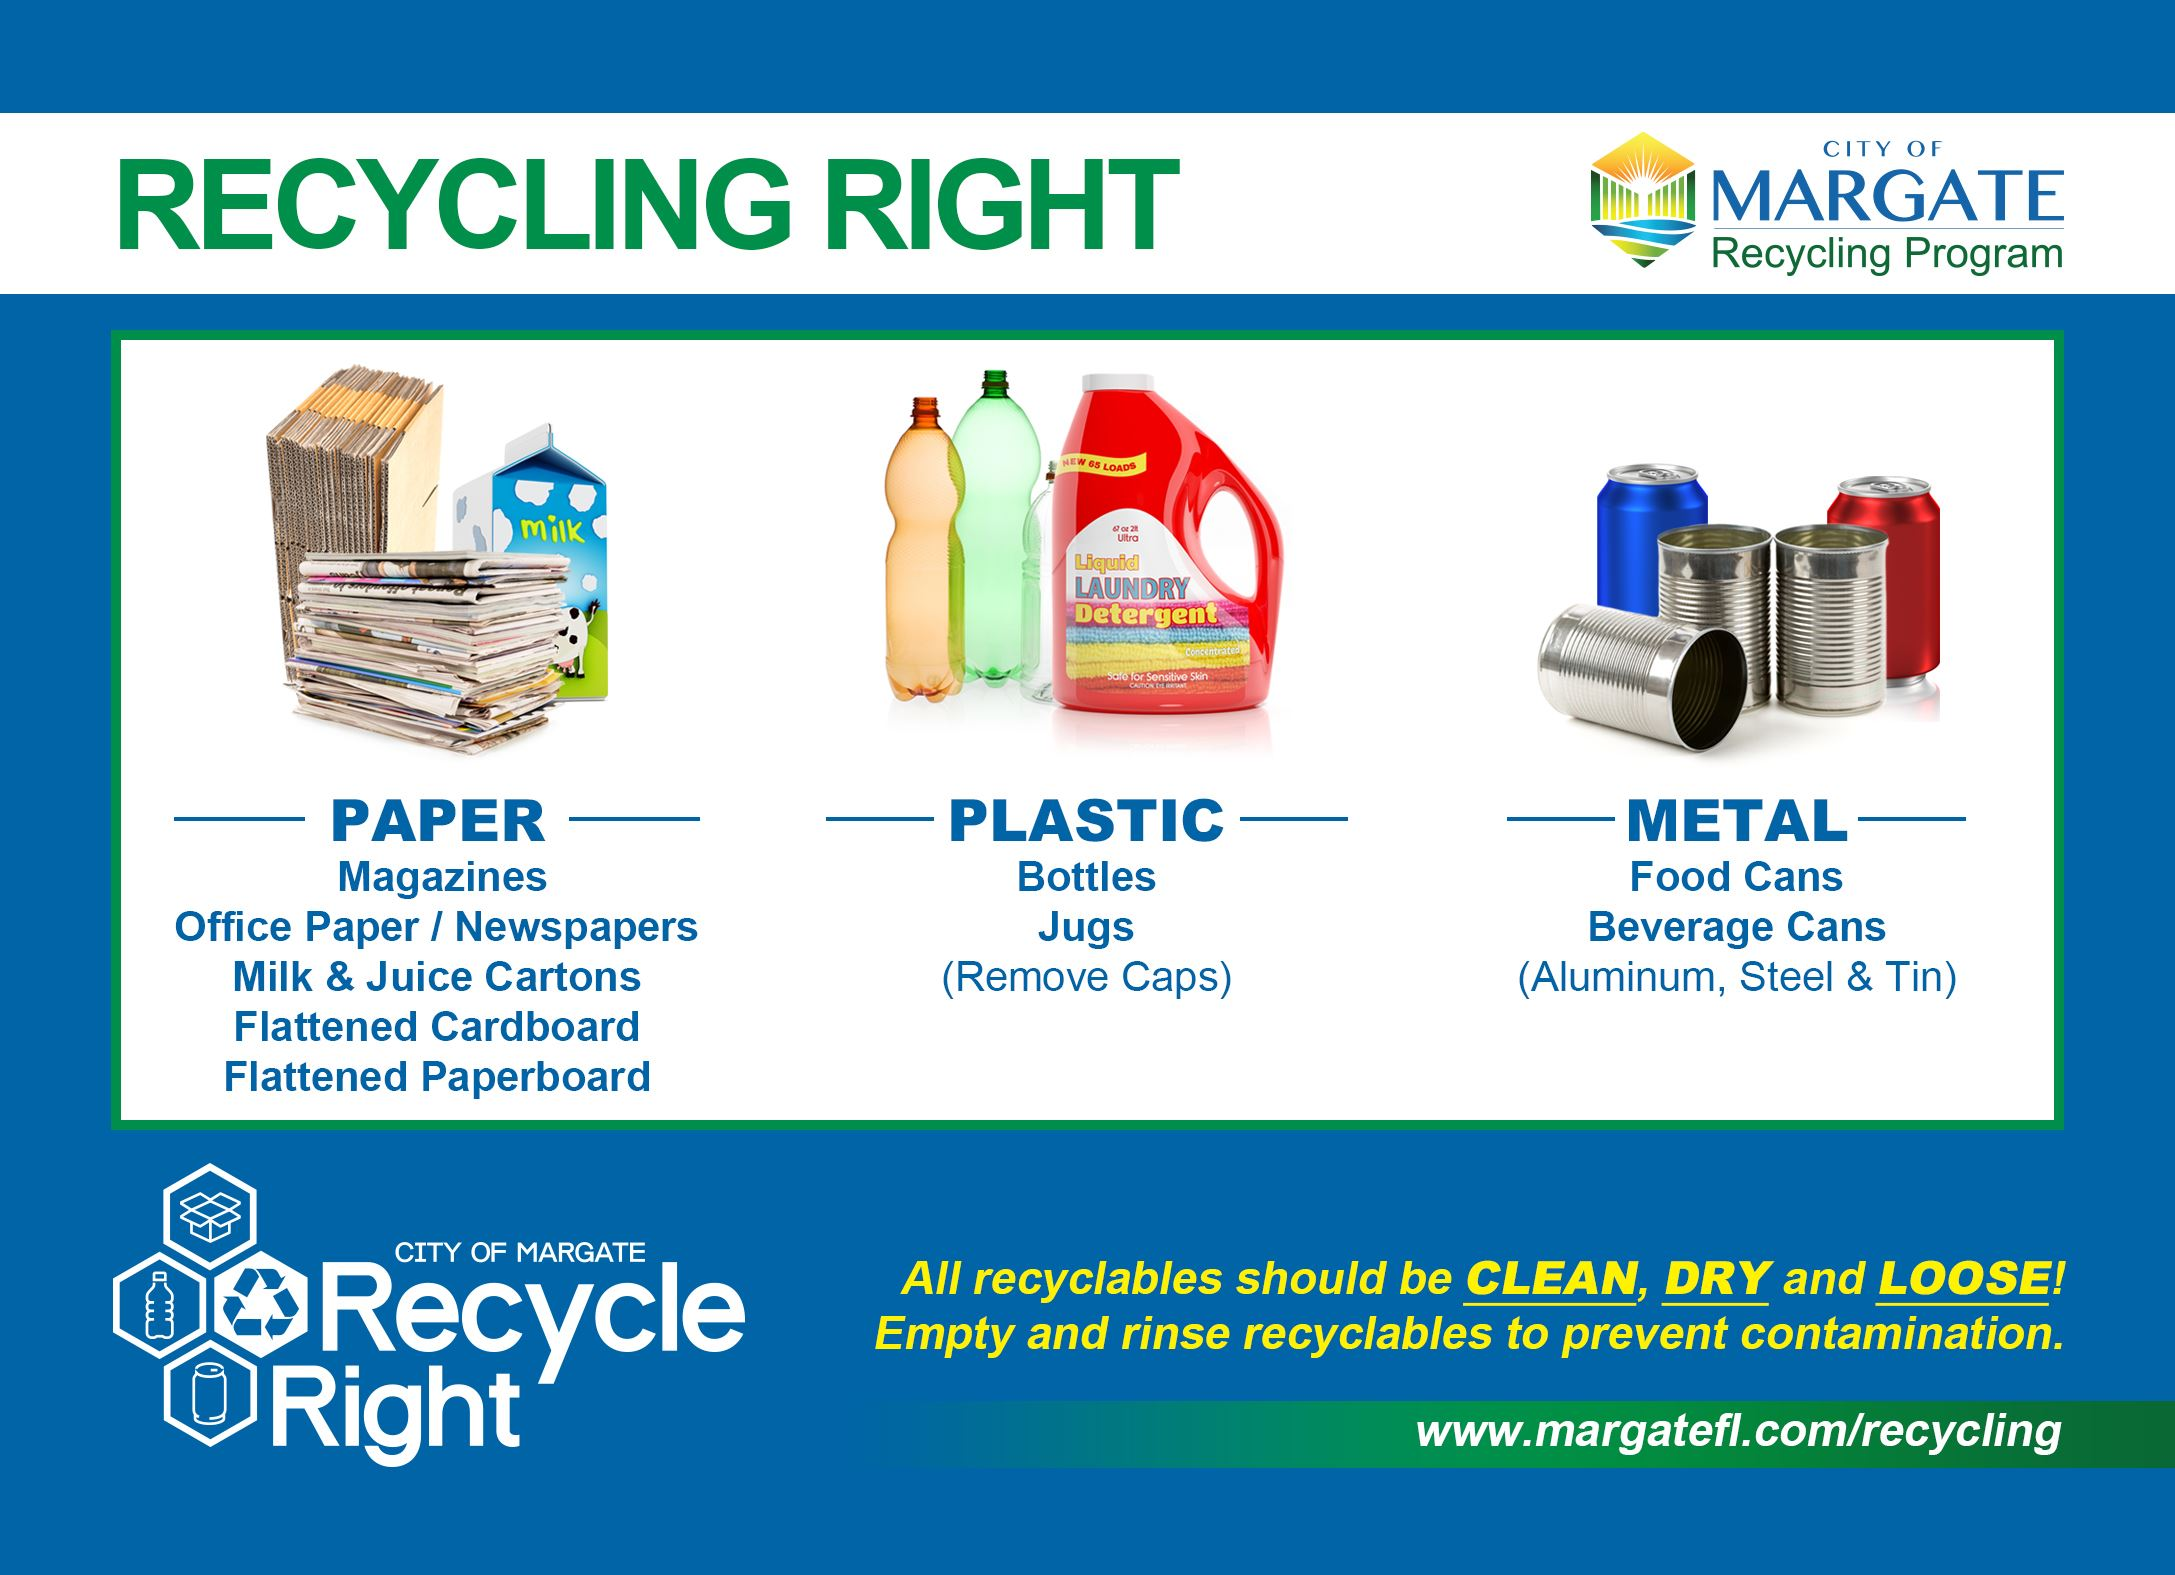 Recycling Right 2019